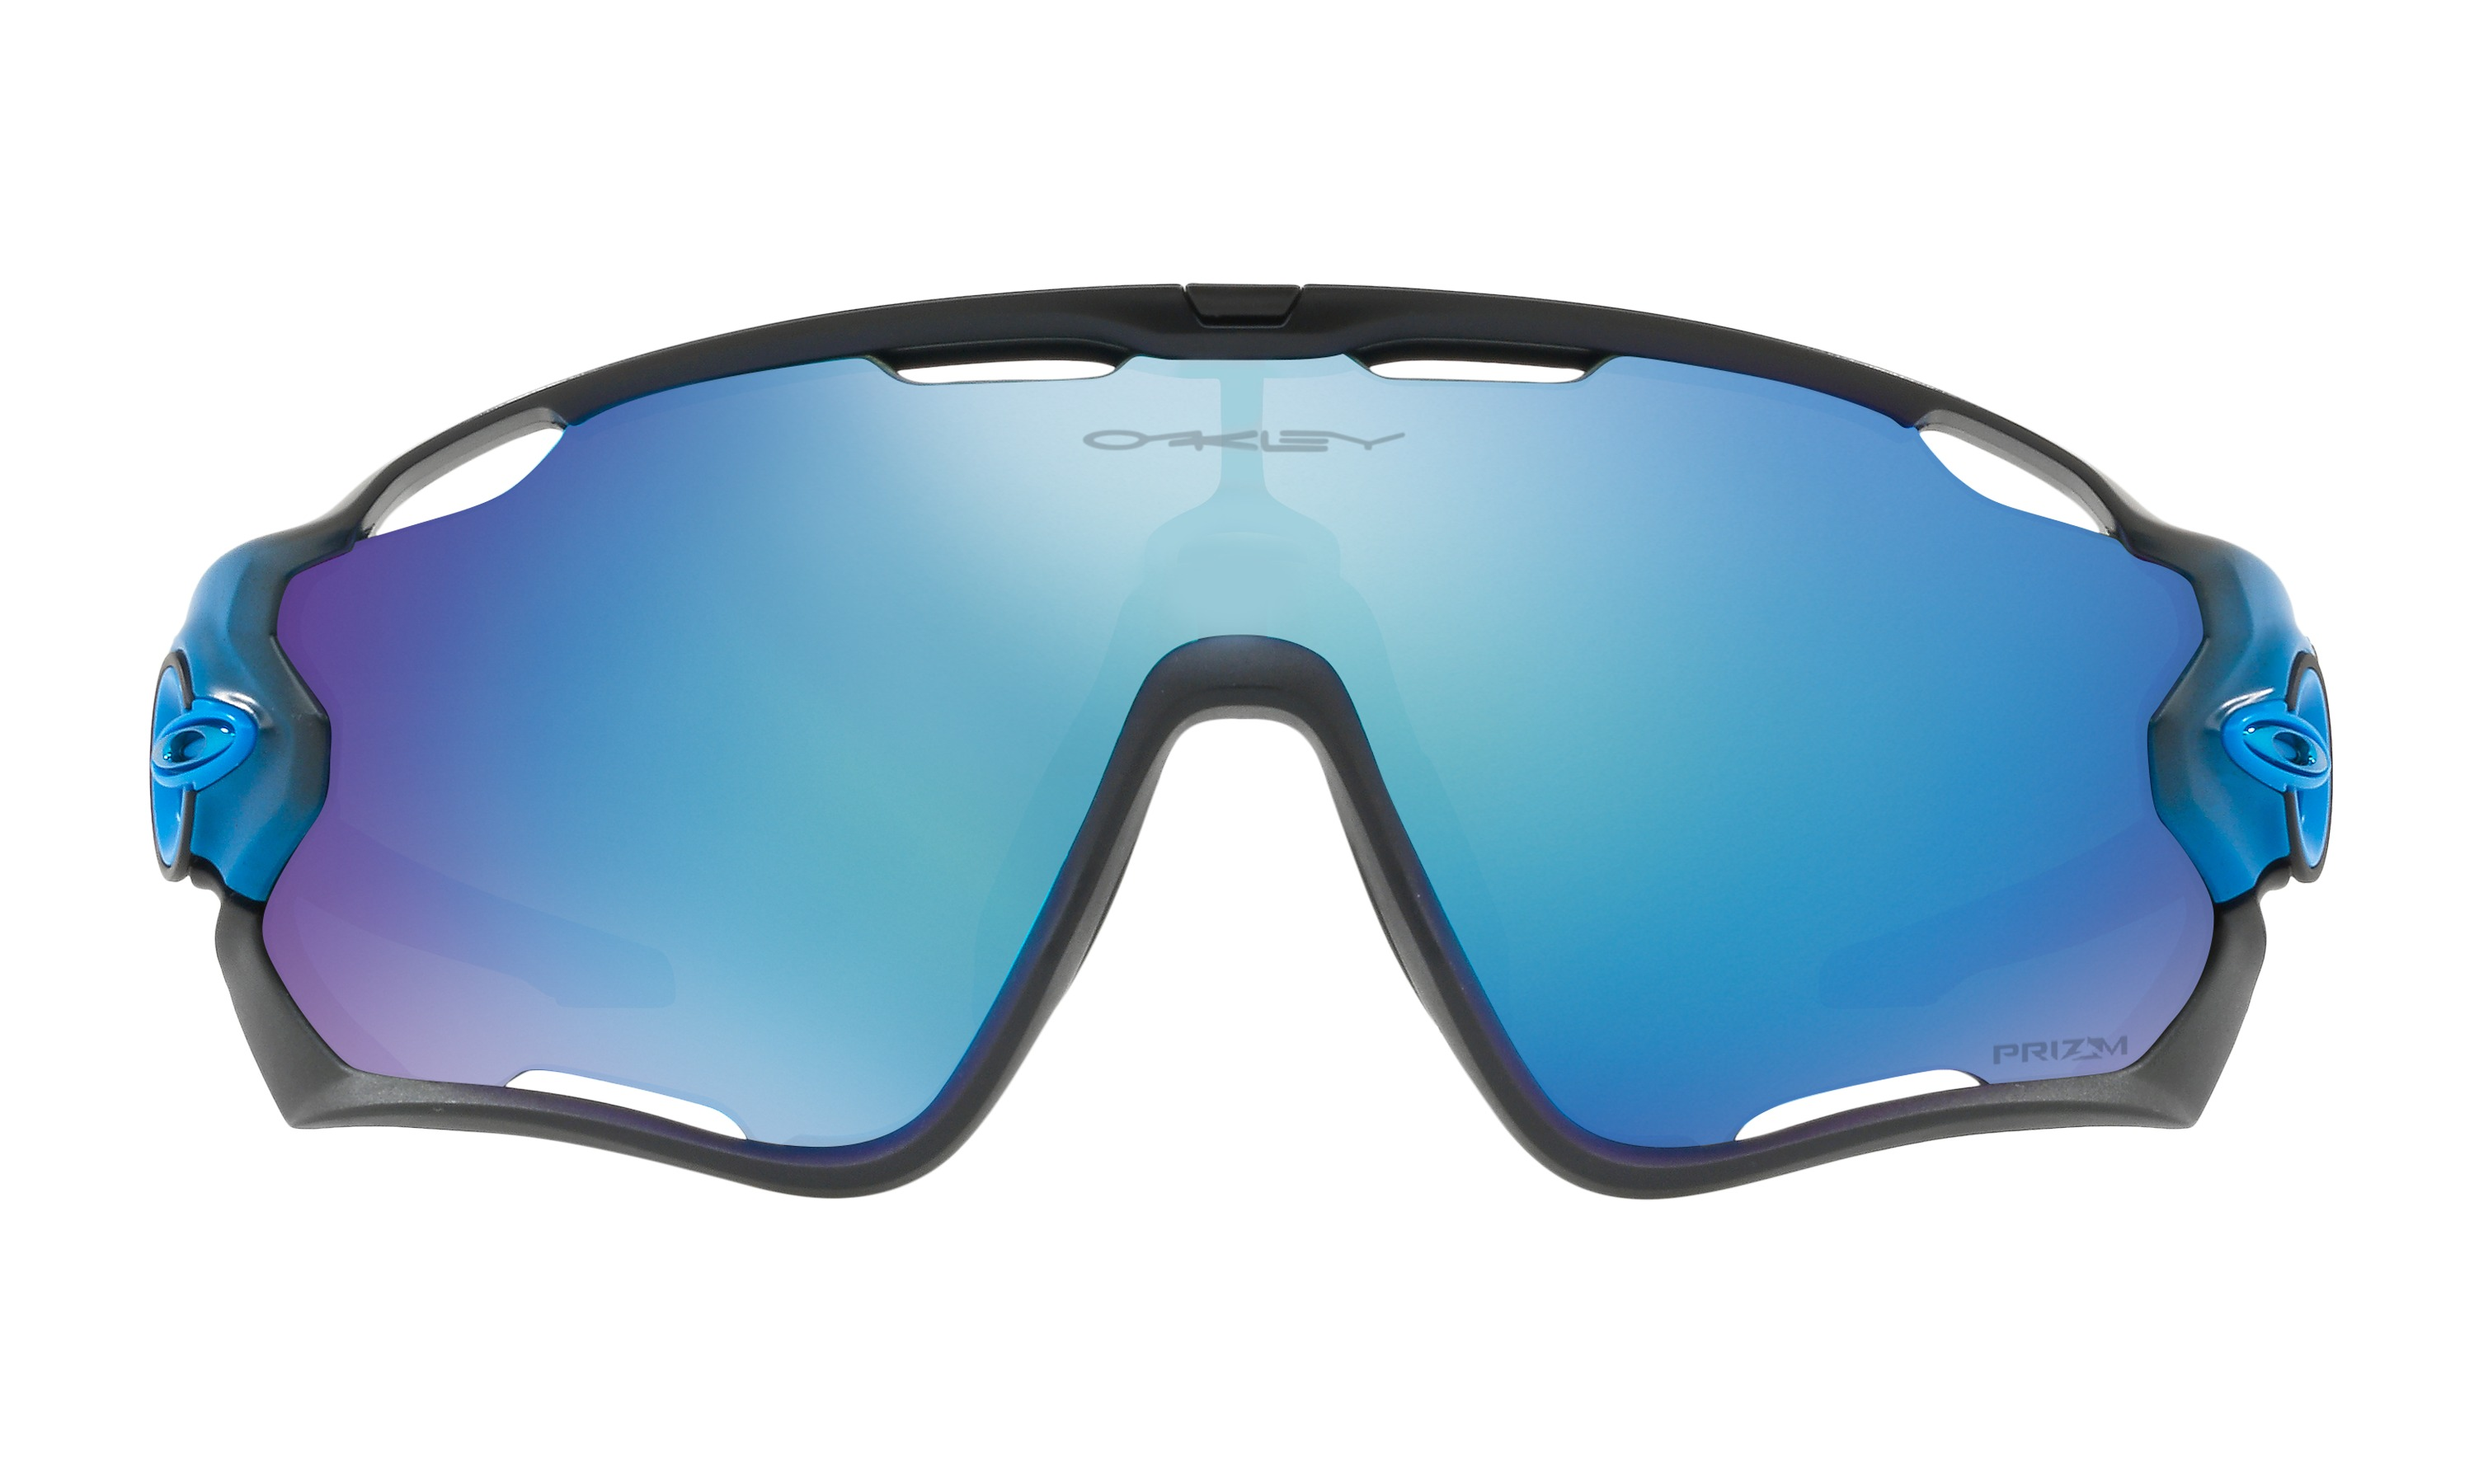 d0eeb2eb7c JAWBREAKER PRIZM POLARIZED SAPPHIRE FADE COLLECTION - Bells Cycling